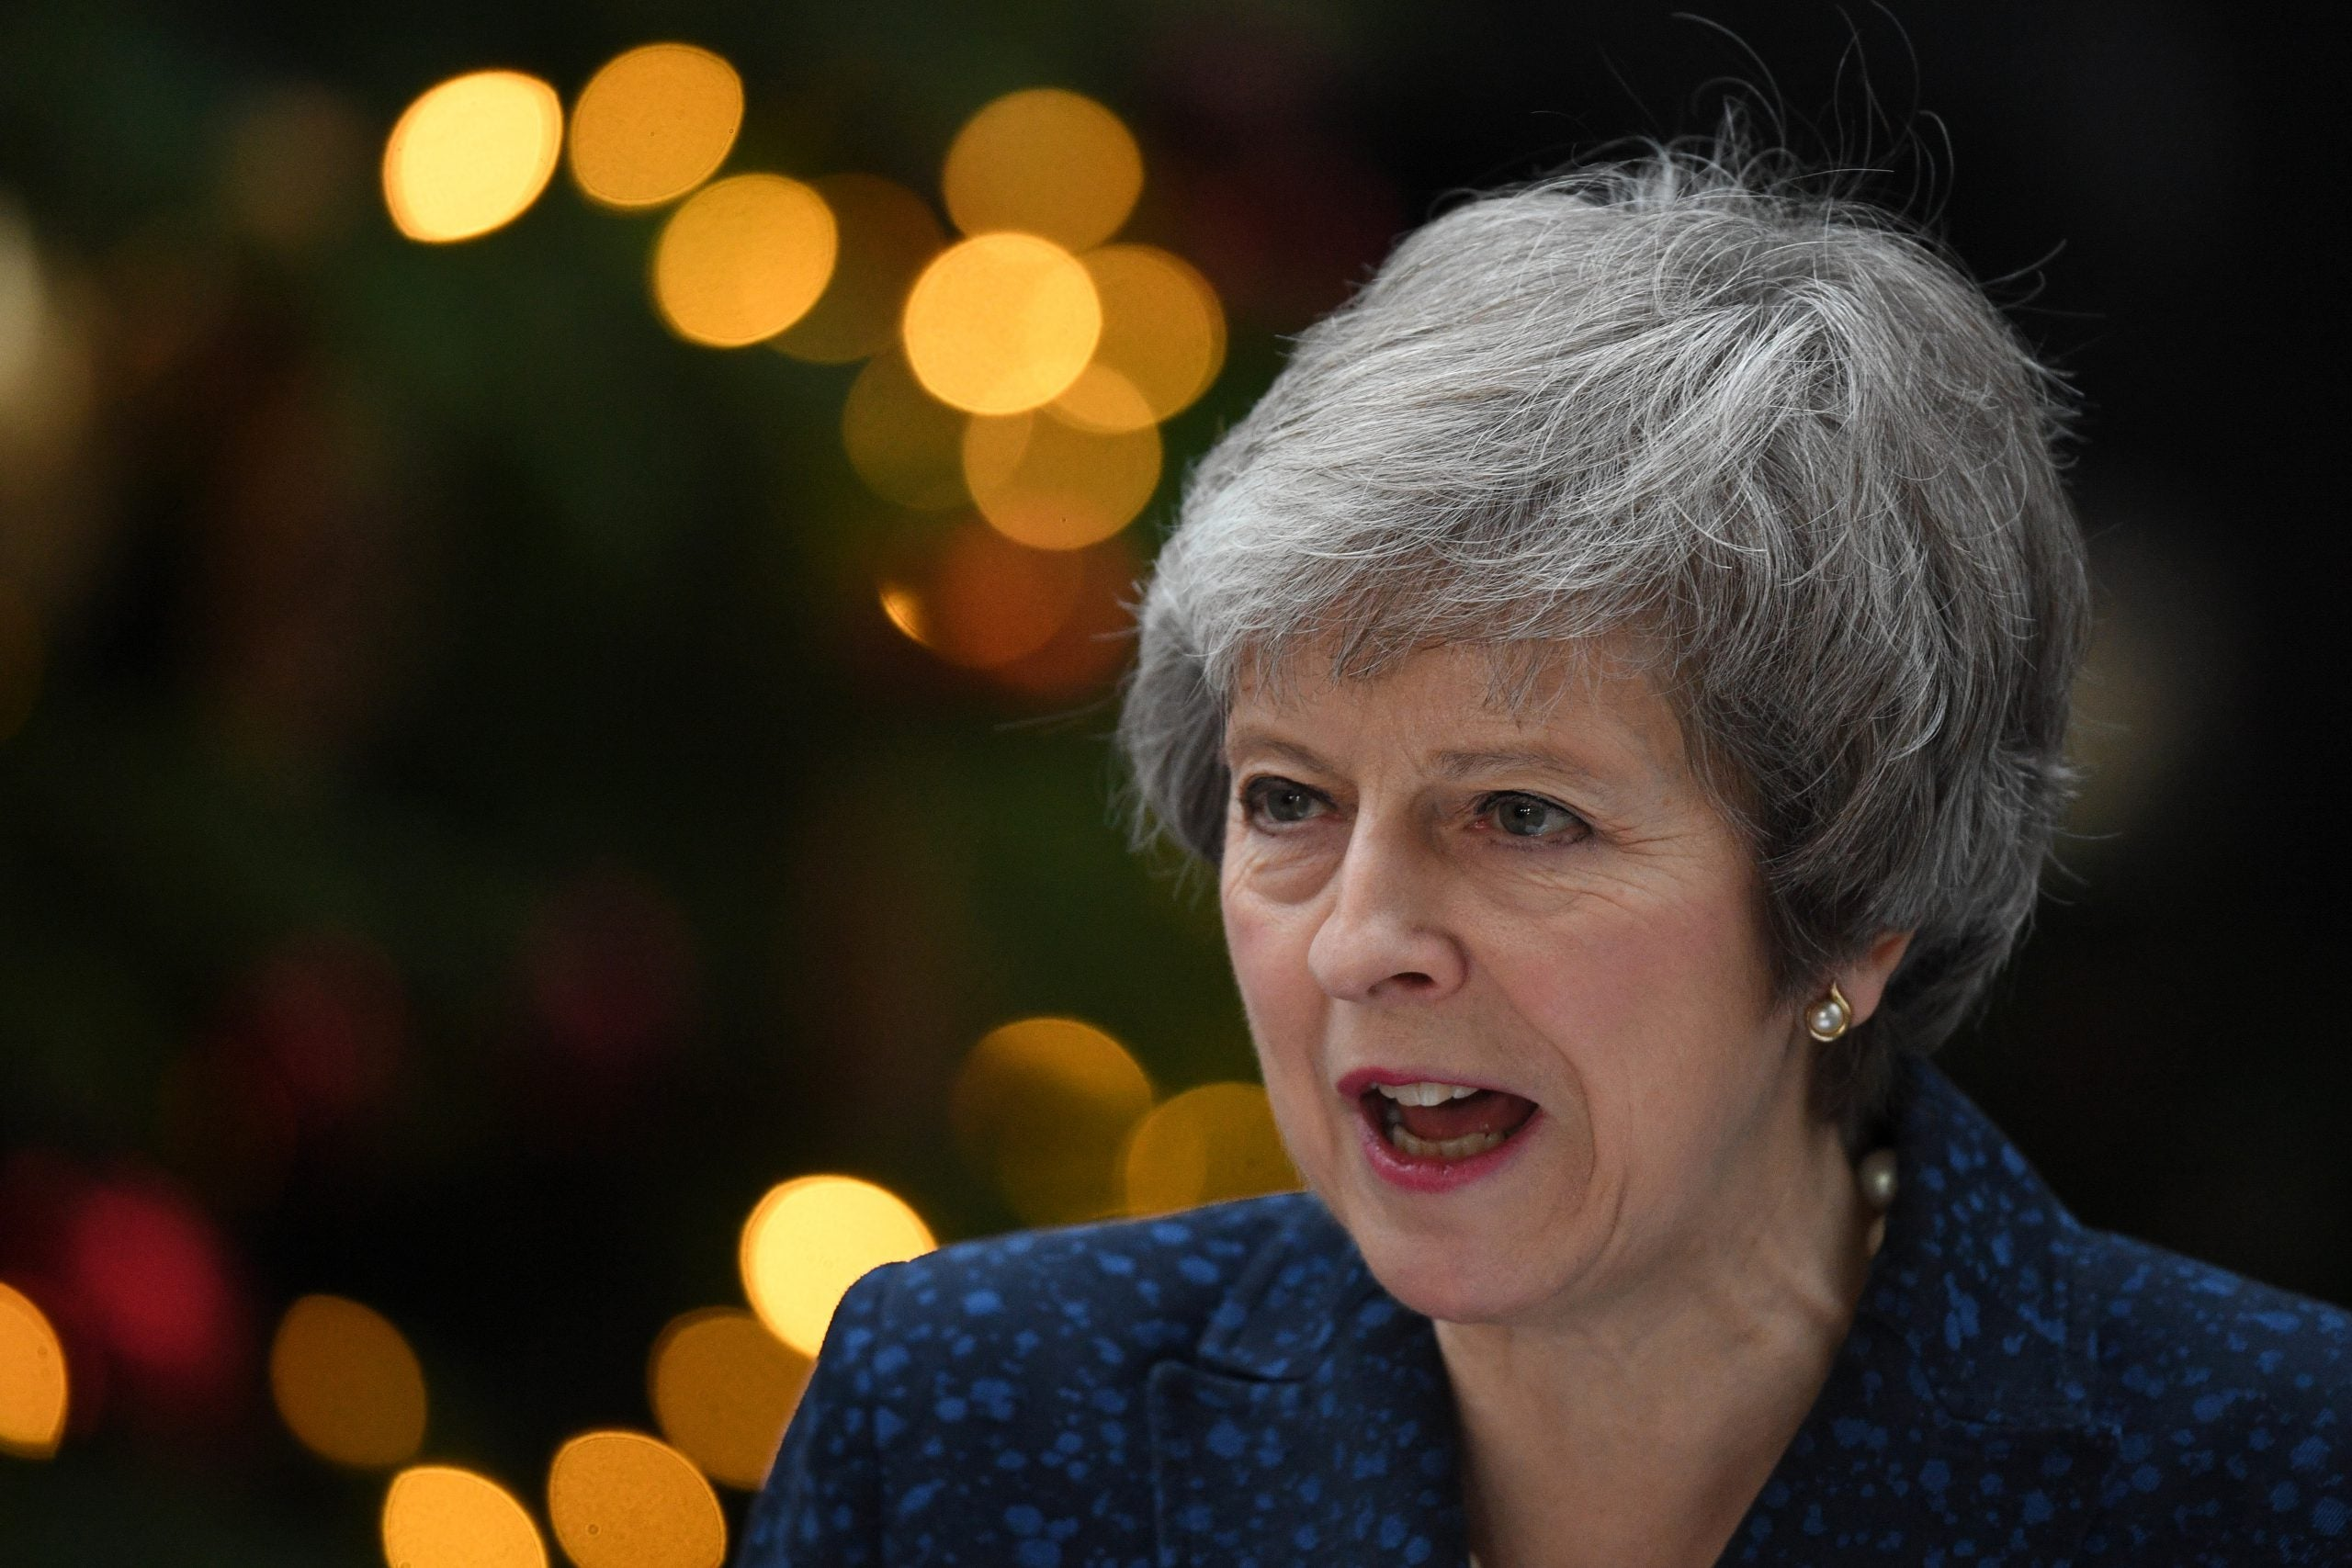 The rise of the 2017 intake reflects the surprising endurance of Theresa May